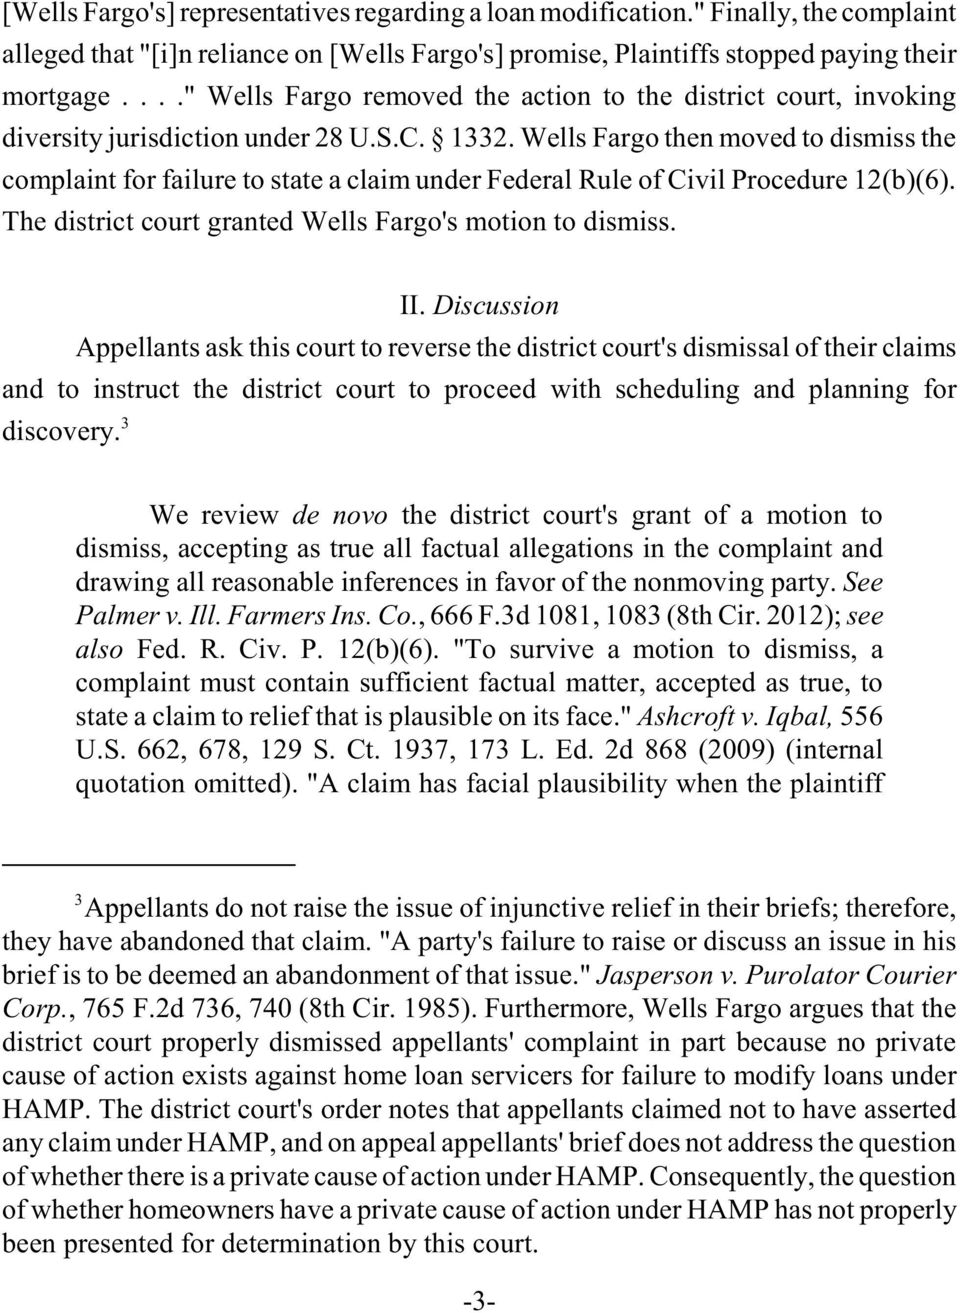 Wells Fargo then moved to dismiss the complaint for failure to state a claim under Federal Rule of Civil Procedure 12(b)(6). The district court granted Wells Fargo's motion to dismiss. II.